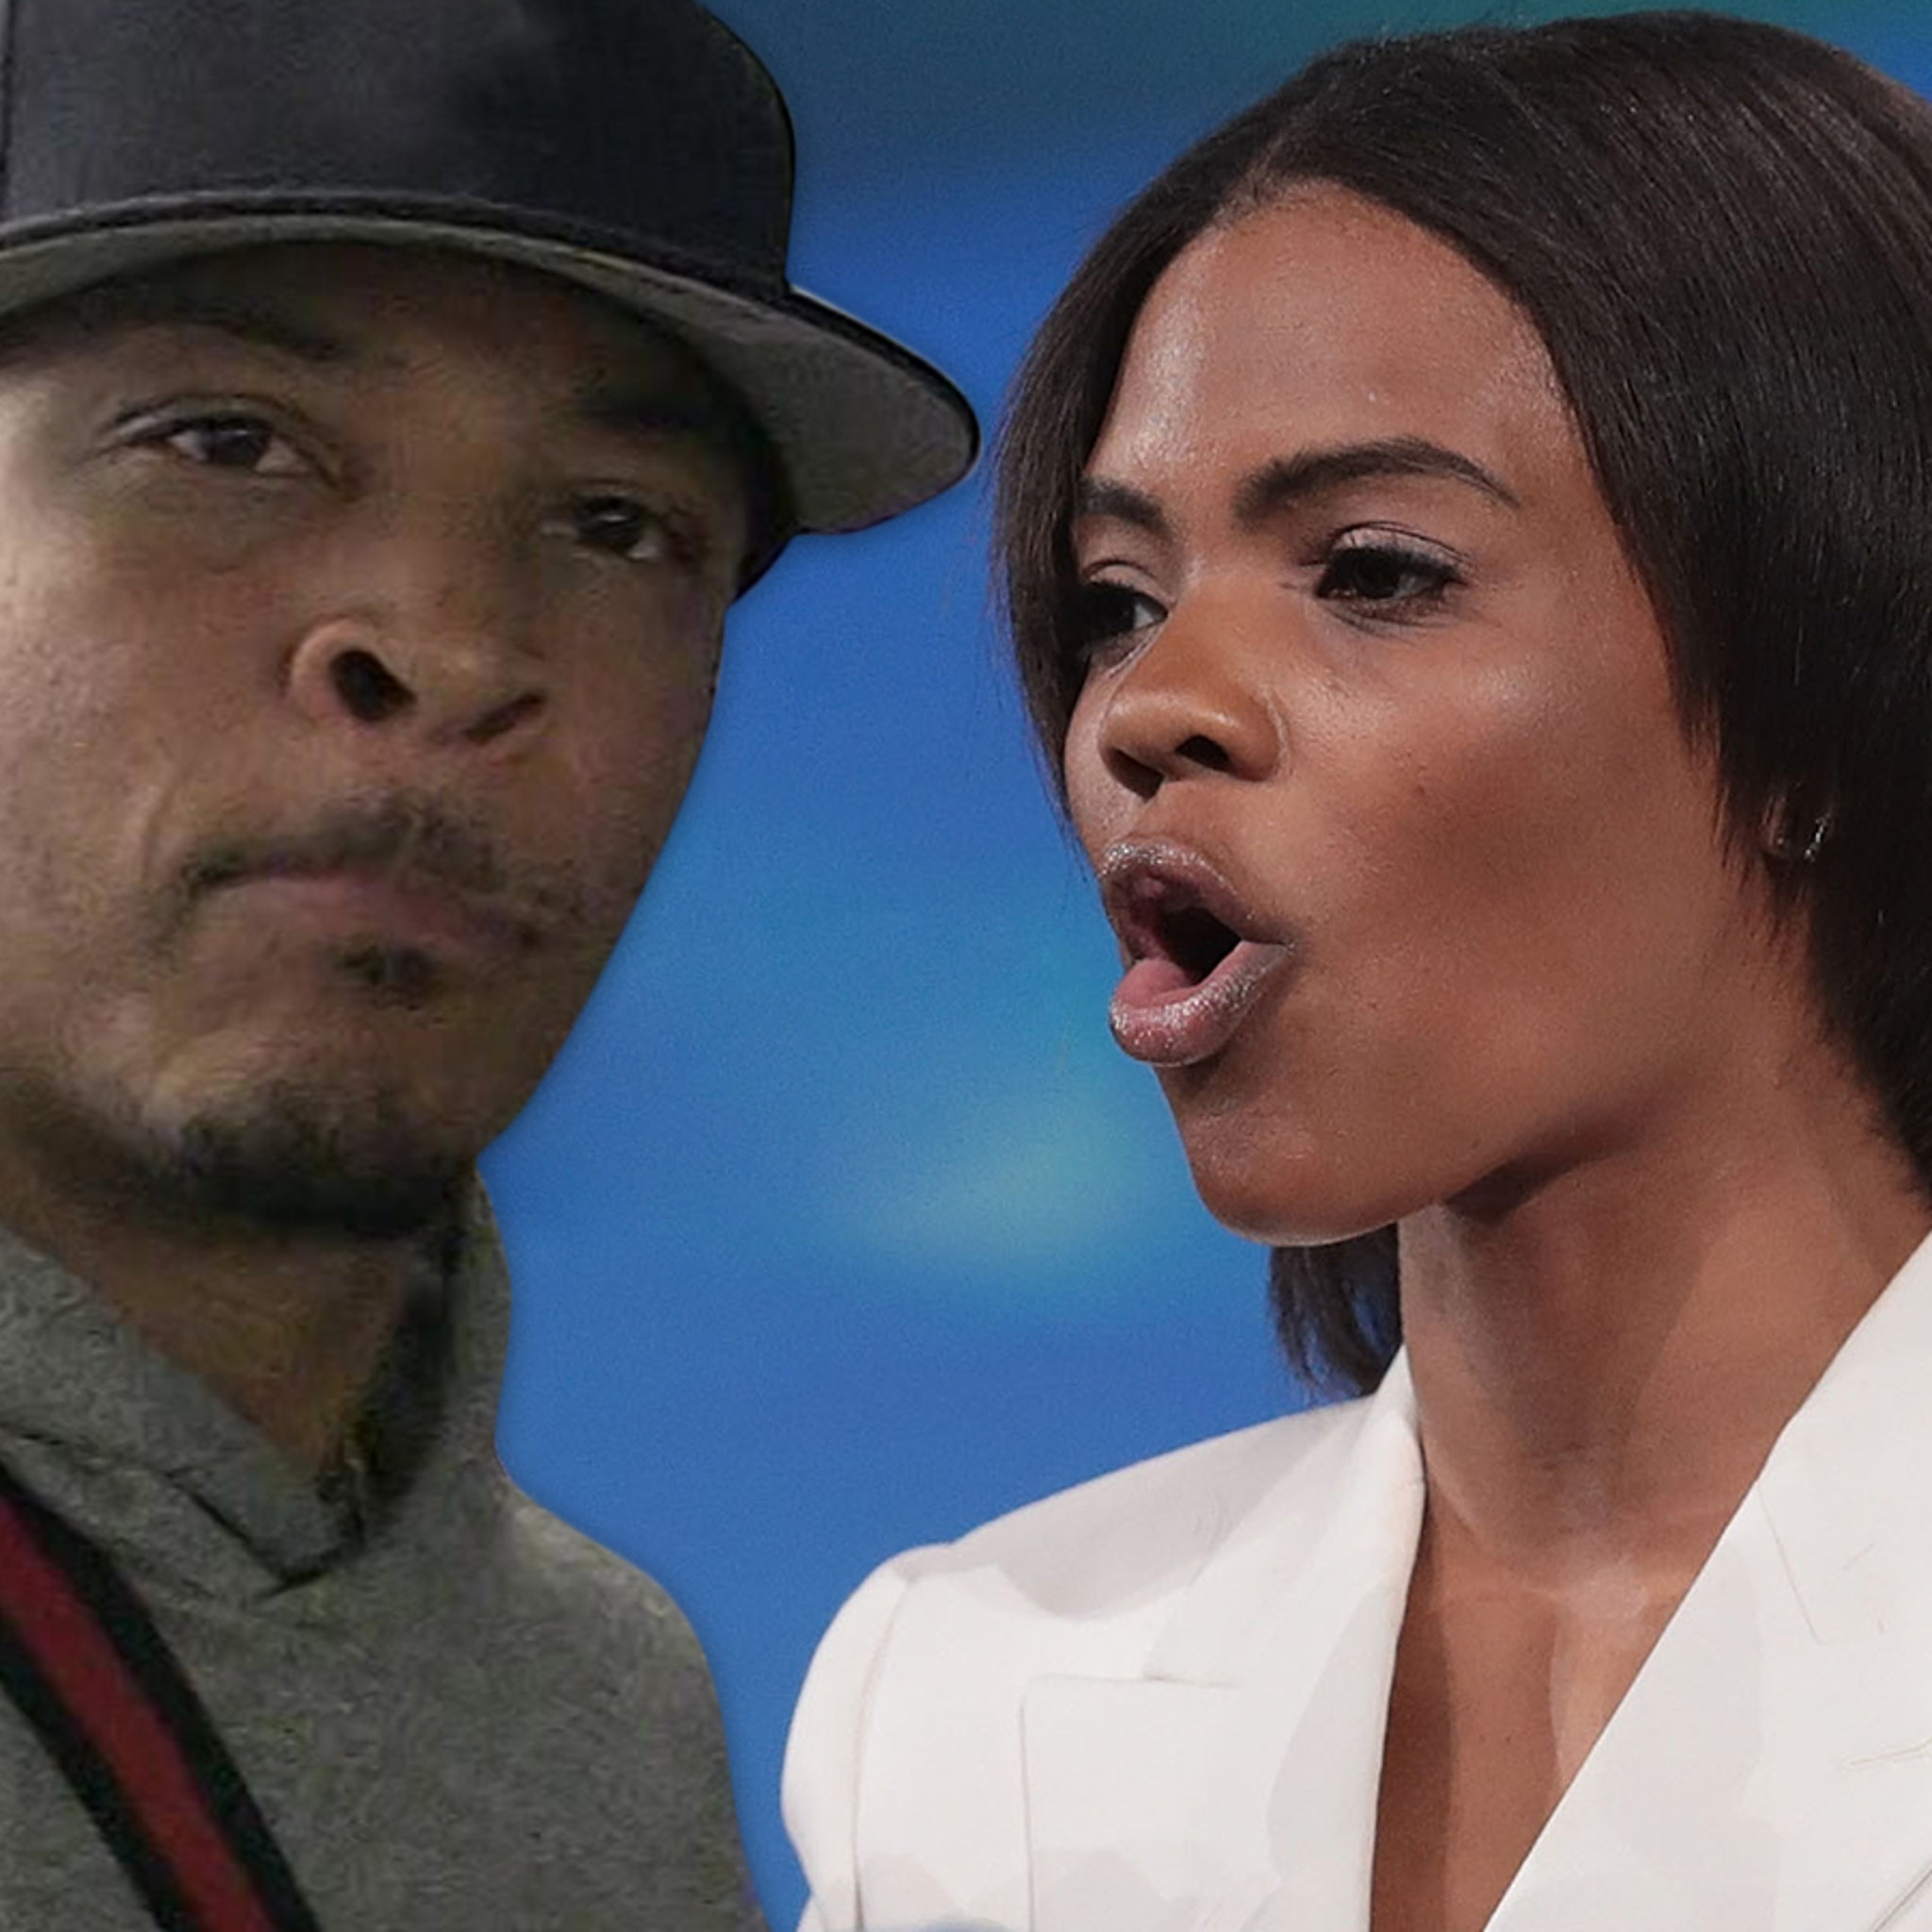 T.I. Asks Candace Owens When Was America Great, She Deflects